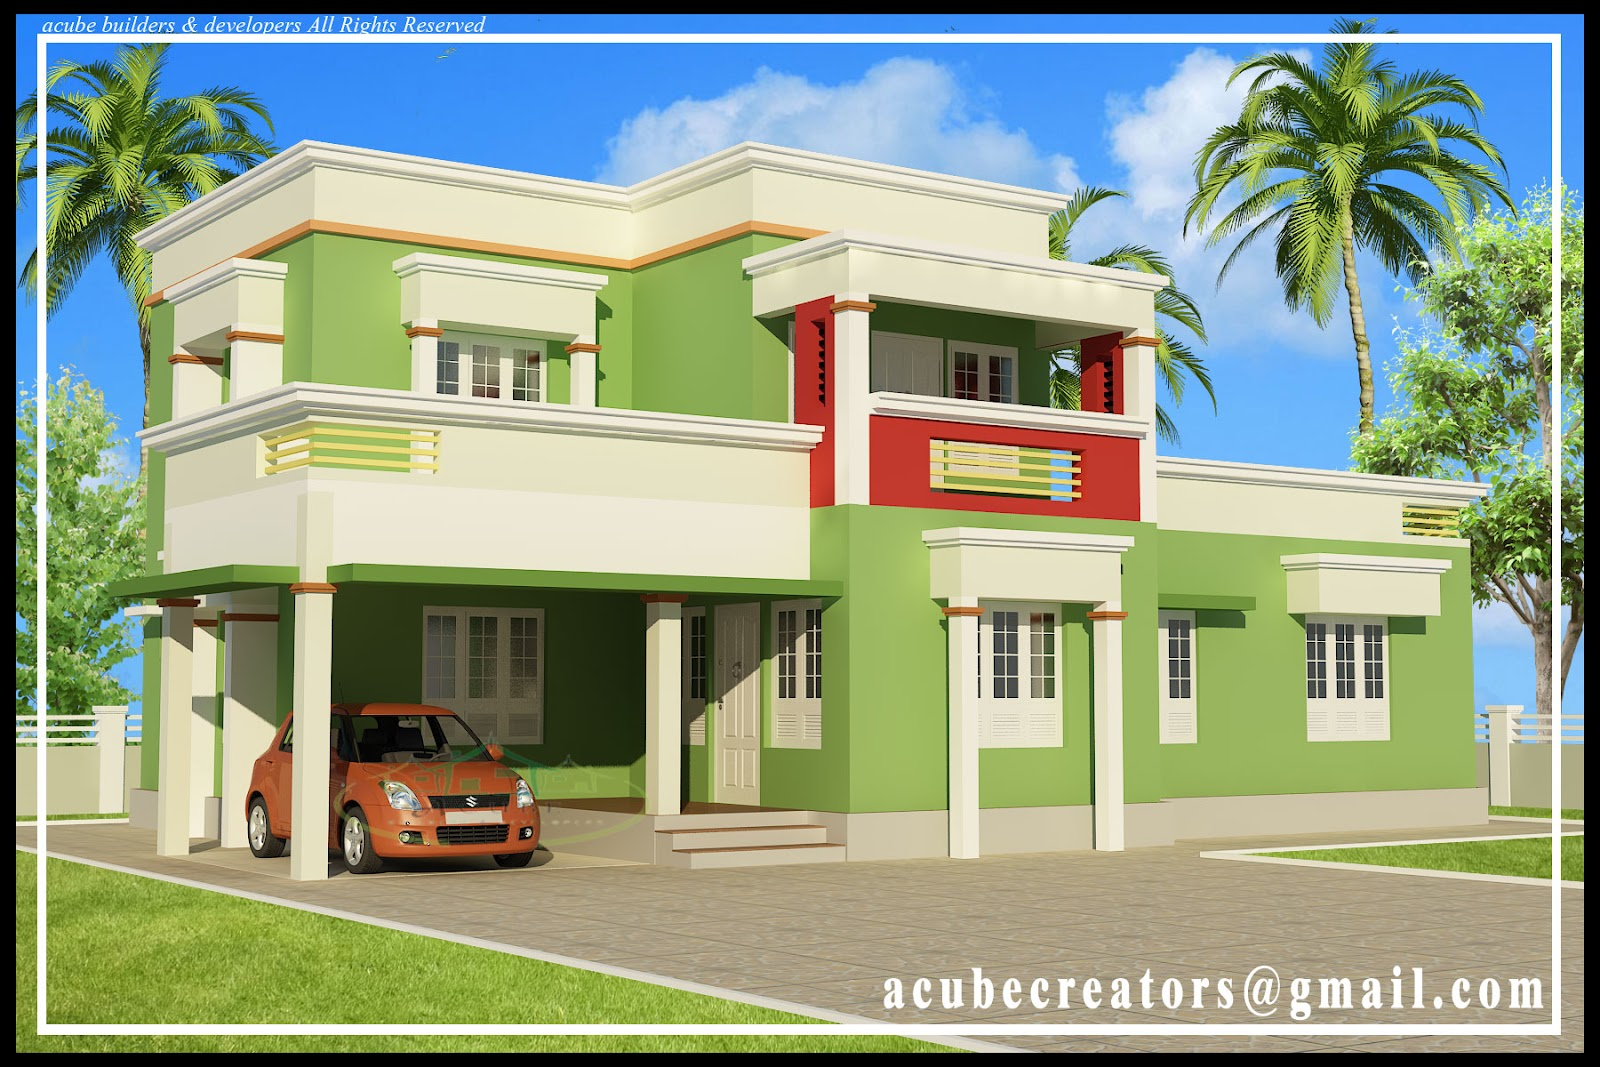 Simple cute modern home design 1879 sq ft plan 136 Simple modern house plans